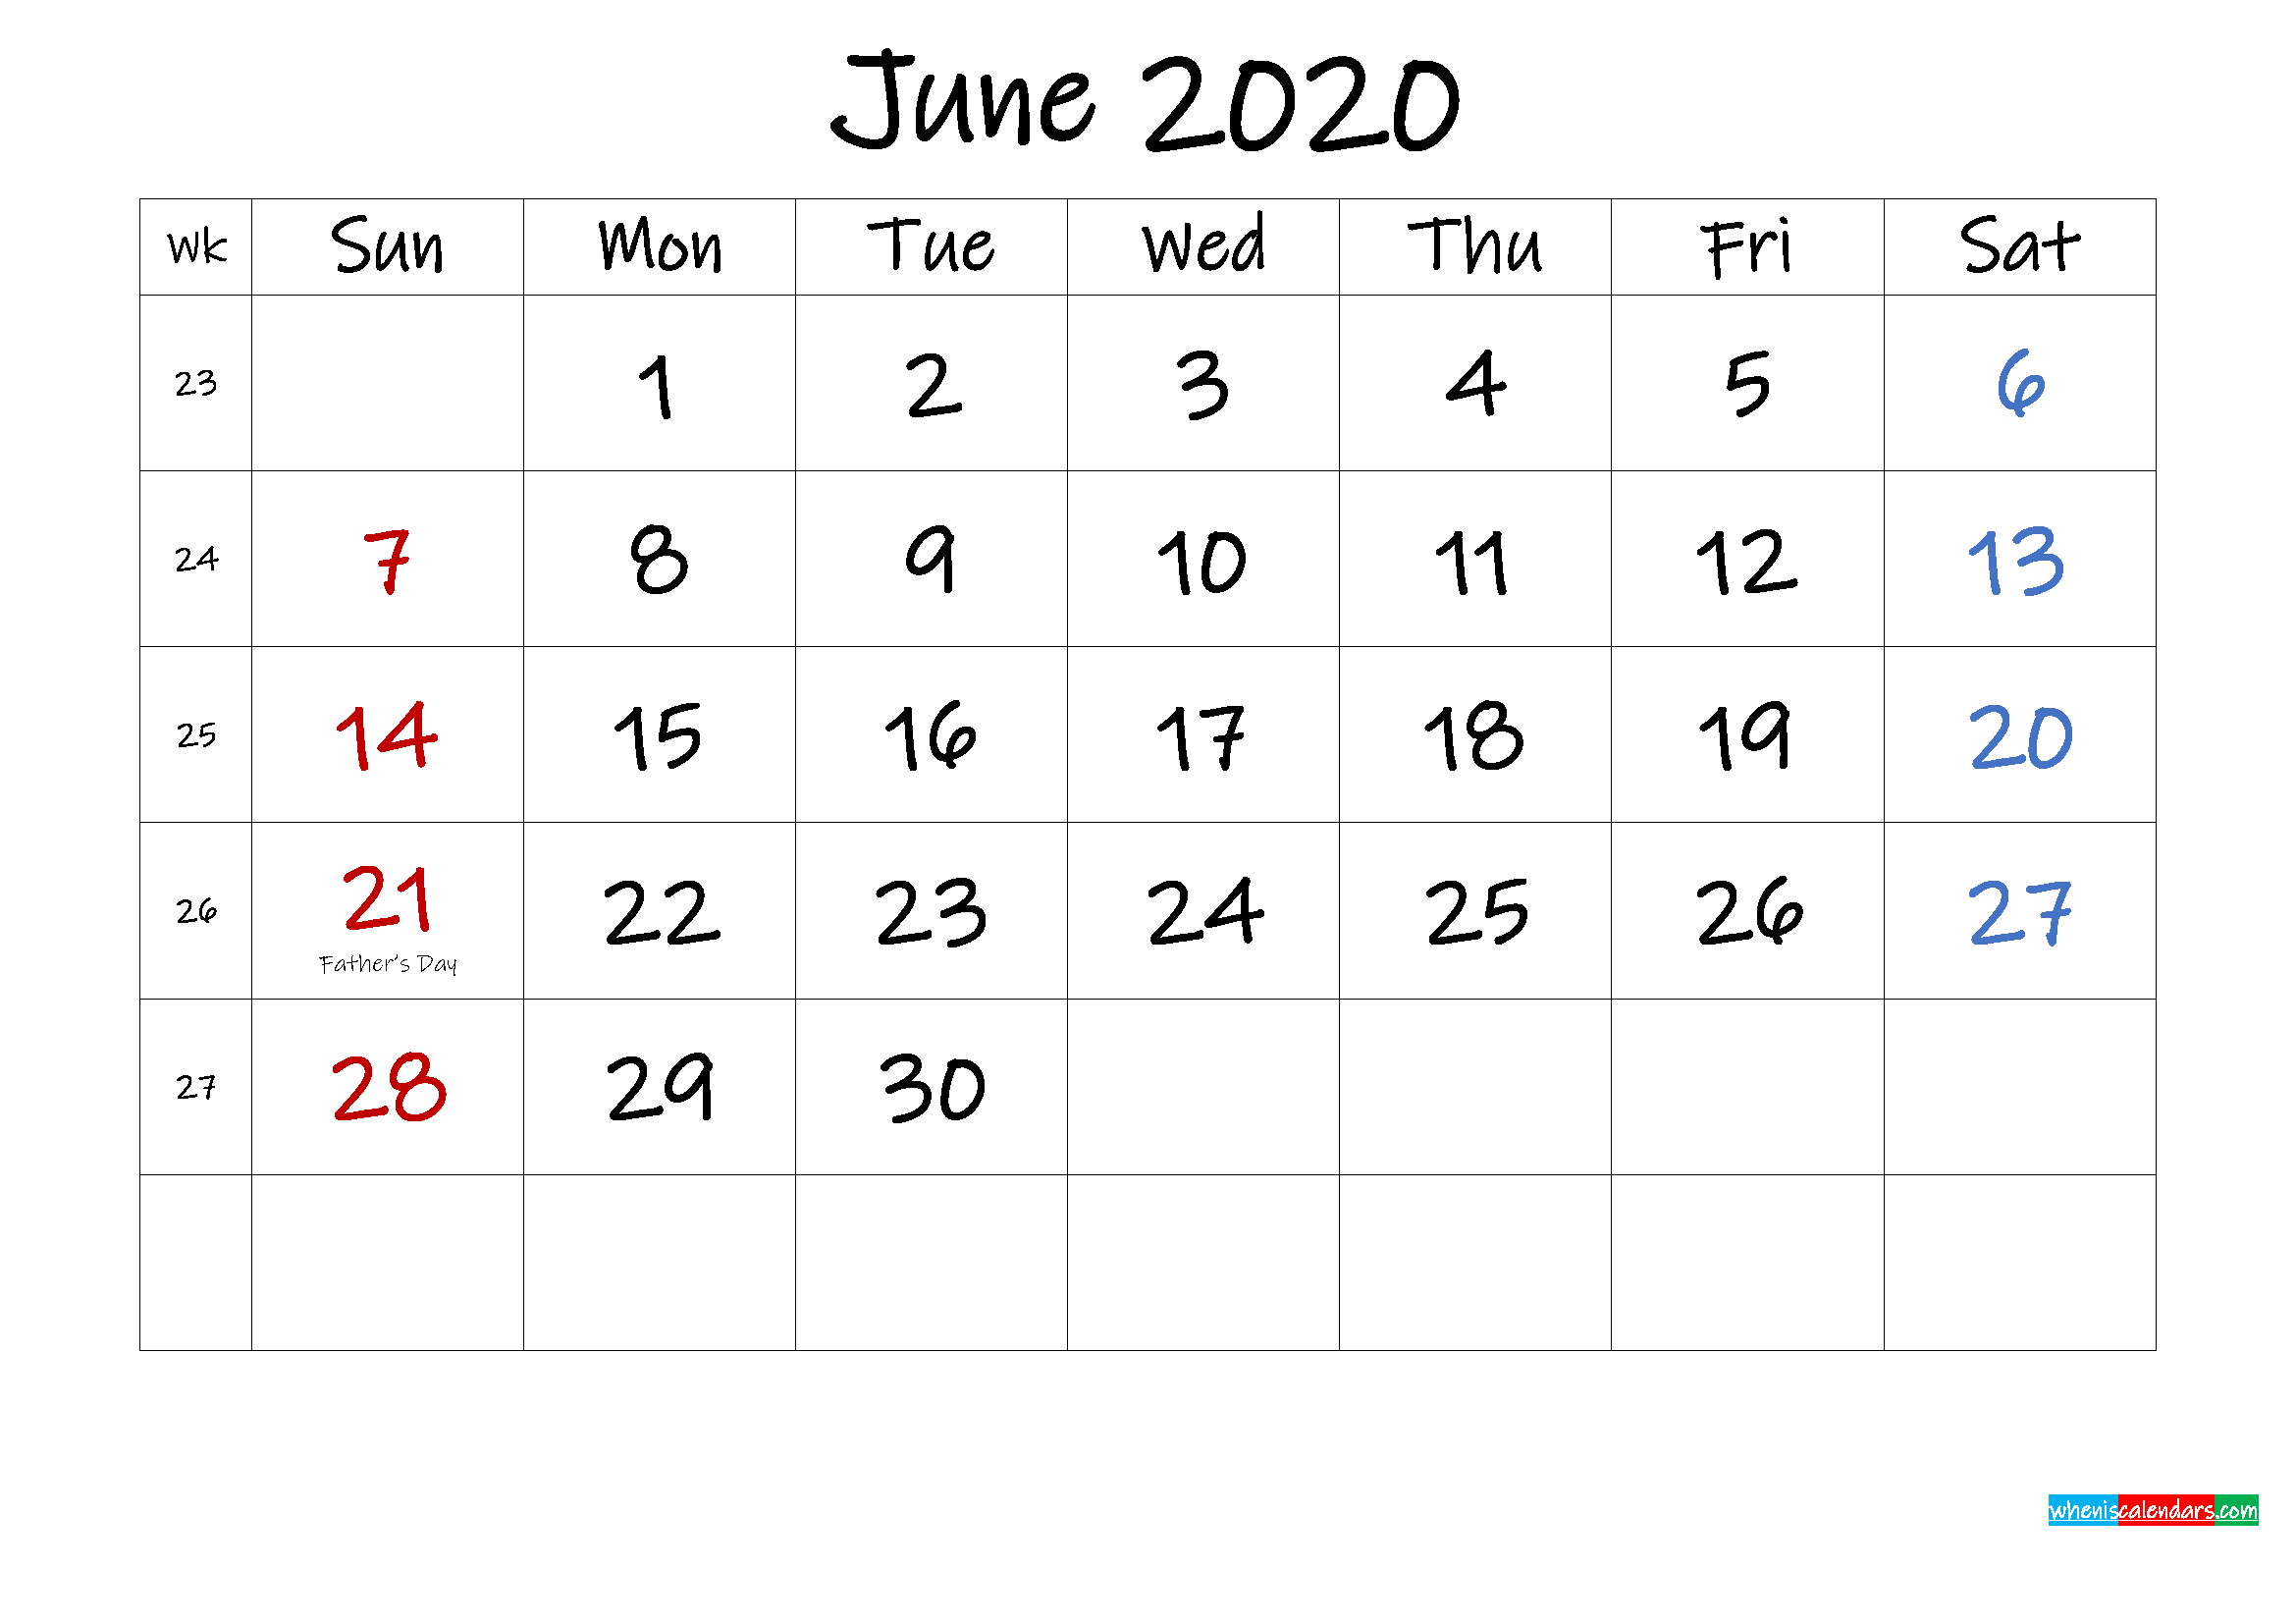 June 2020 Free Printable Calendar with Holidays